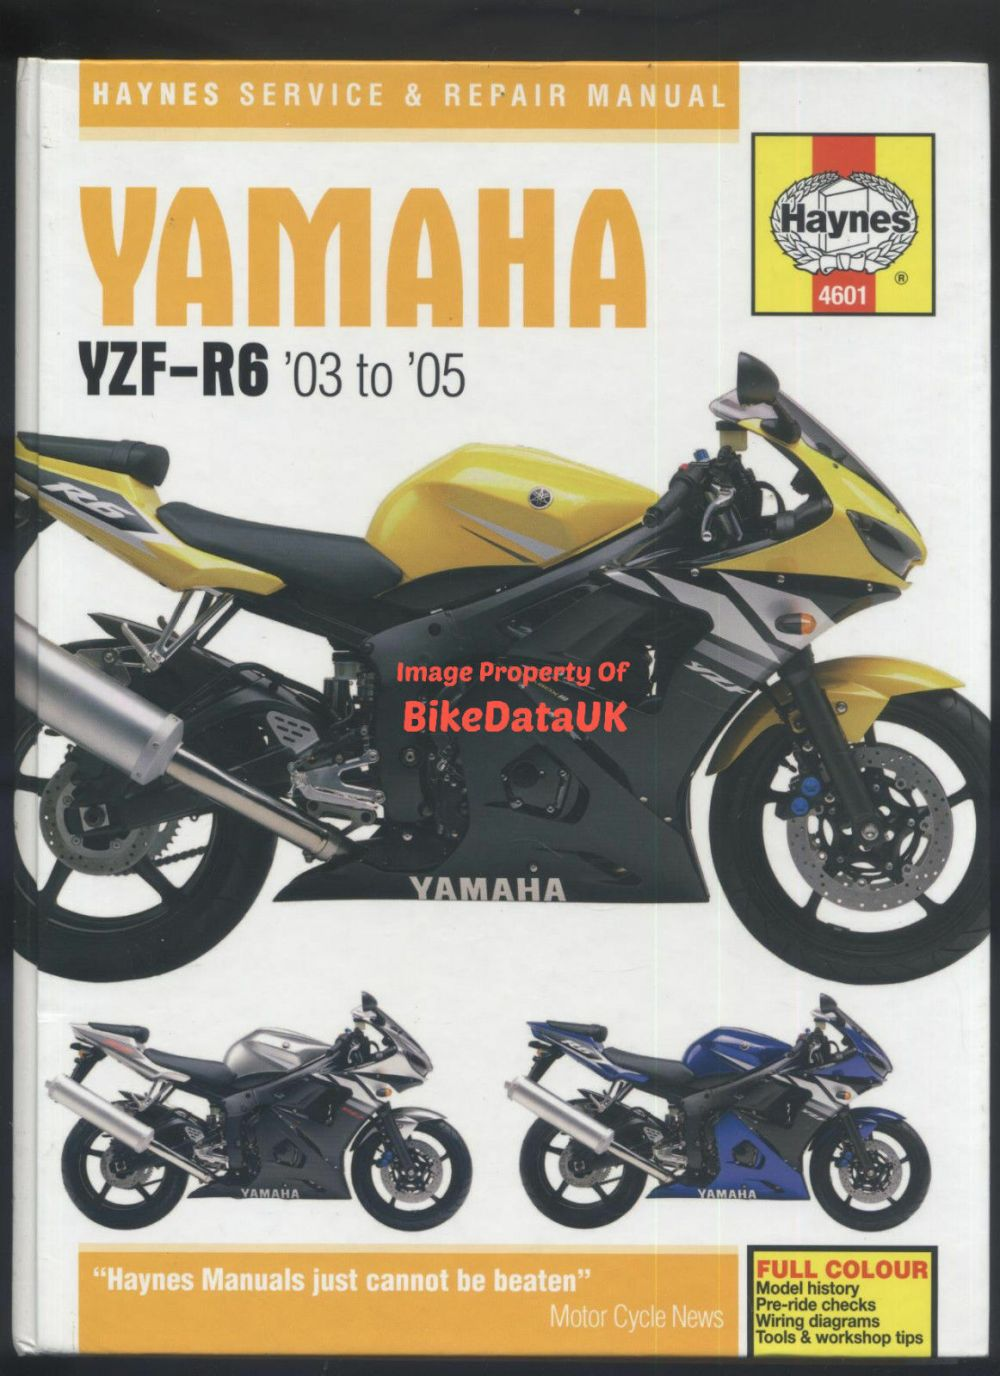 medium resolution of yamaha r6 03 05 5sl haynes maintenance workshop manual 4601 ebay yamaha rhino wiring diagram 03 yamaha r6 wiring diagram